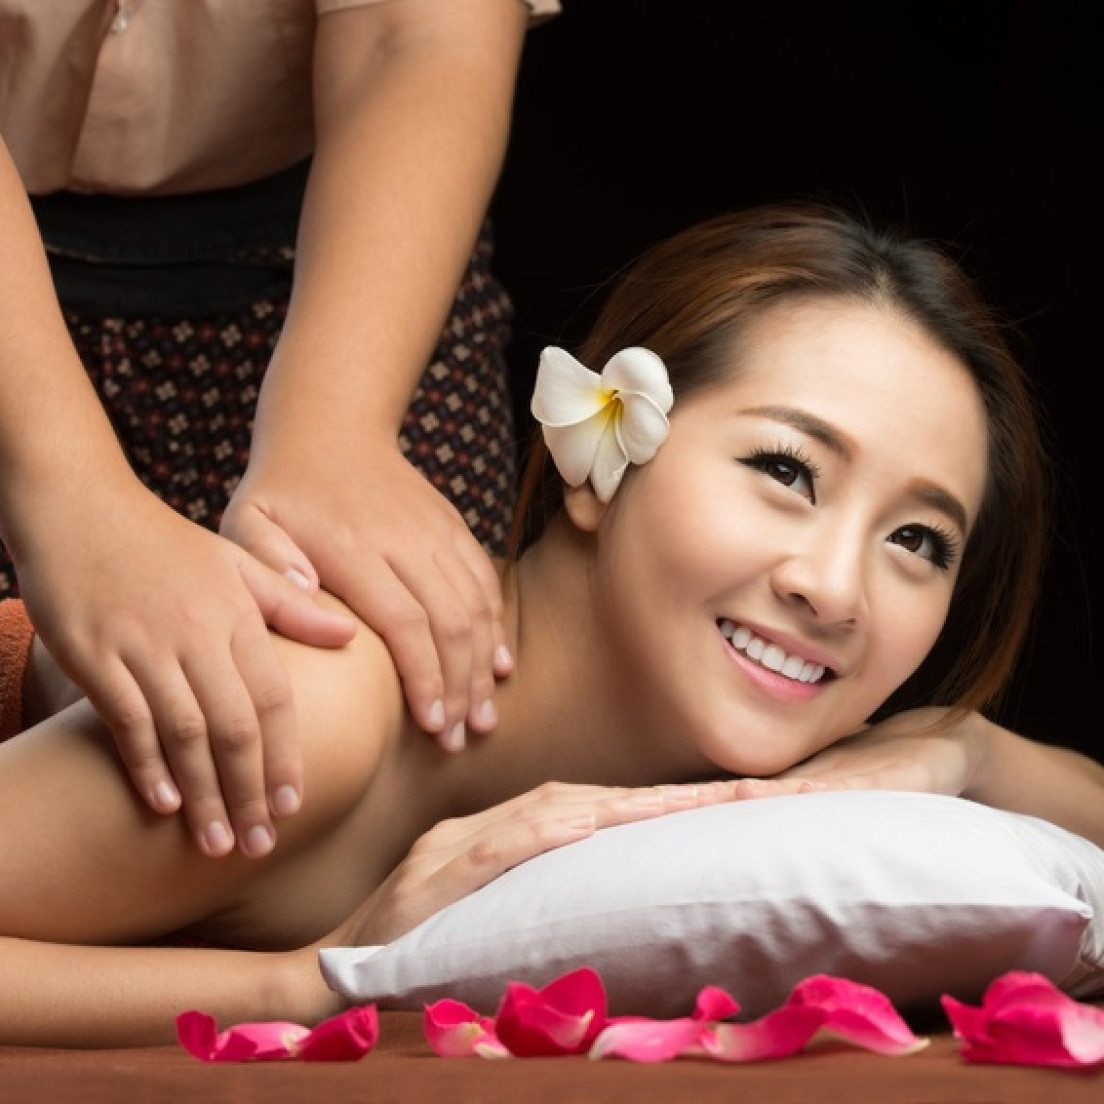 Salon De Massage Asiatique Lyon Massage Chinois Chrong Mai Clermont Ferrand Ideecadeau Fr